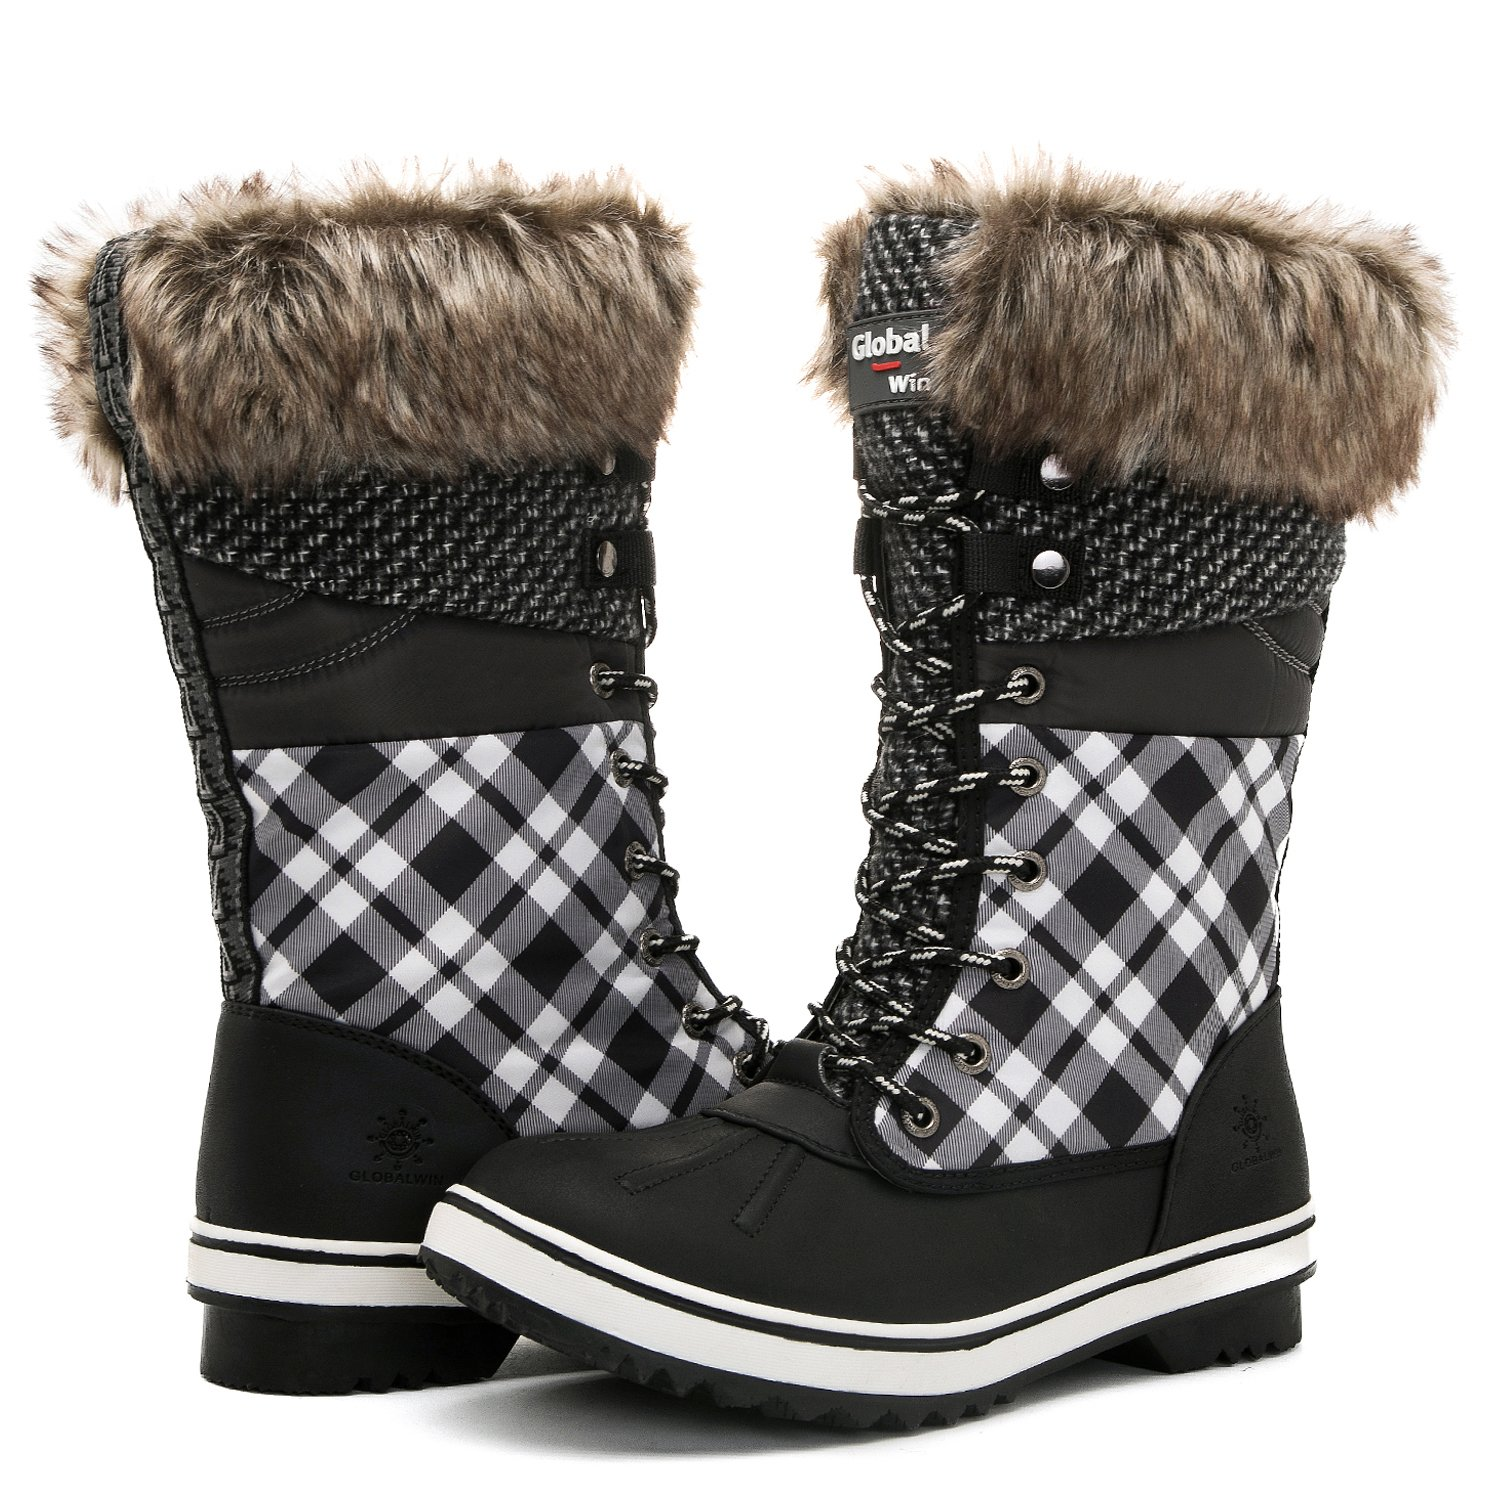 Global Win GLOBALWIN Women's 1730 Winter Snow Boots B075DBCB29 7 B(M) US|1733black/White